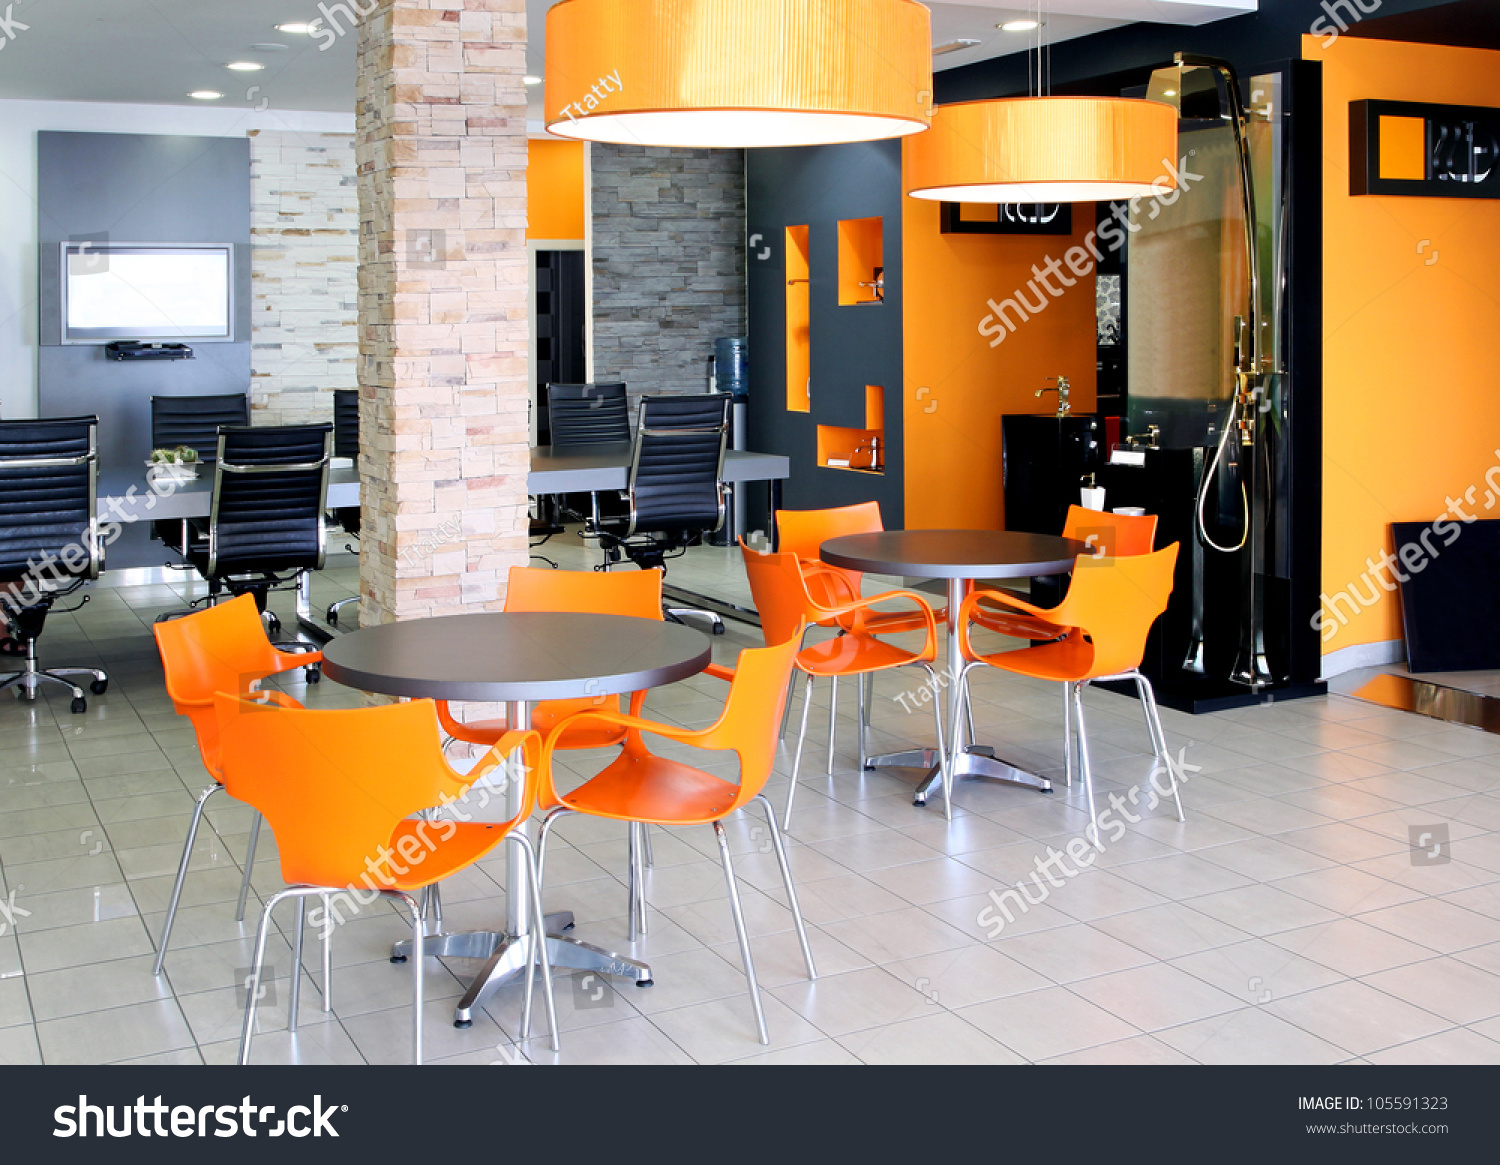 modern office space with bright orange furniture preview save to a lightbox bright modern office space